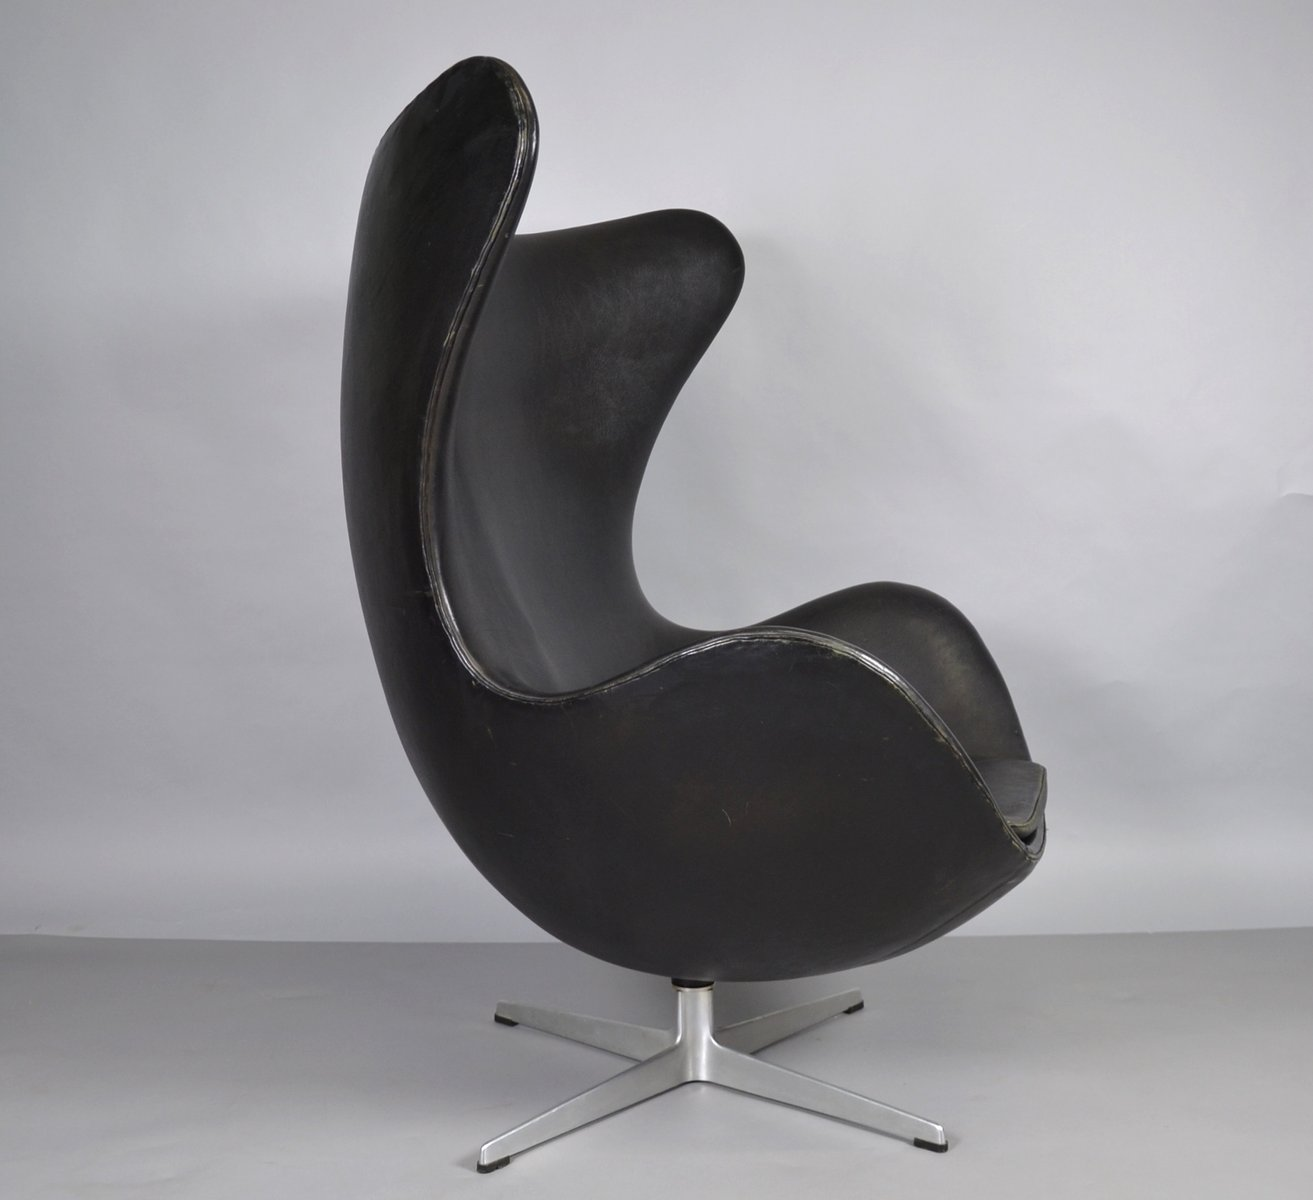 egg stuhl aus leder von arne jacobsen f r fritz hansen 1970er bei pamono kaufen. Black Bedroom Furniture Sets. Home Design Ideas